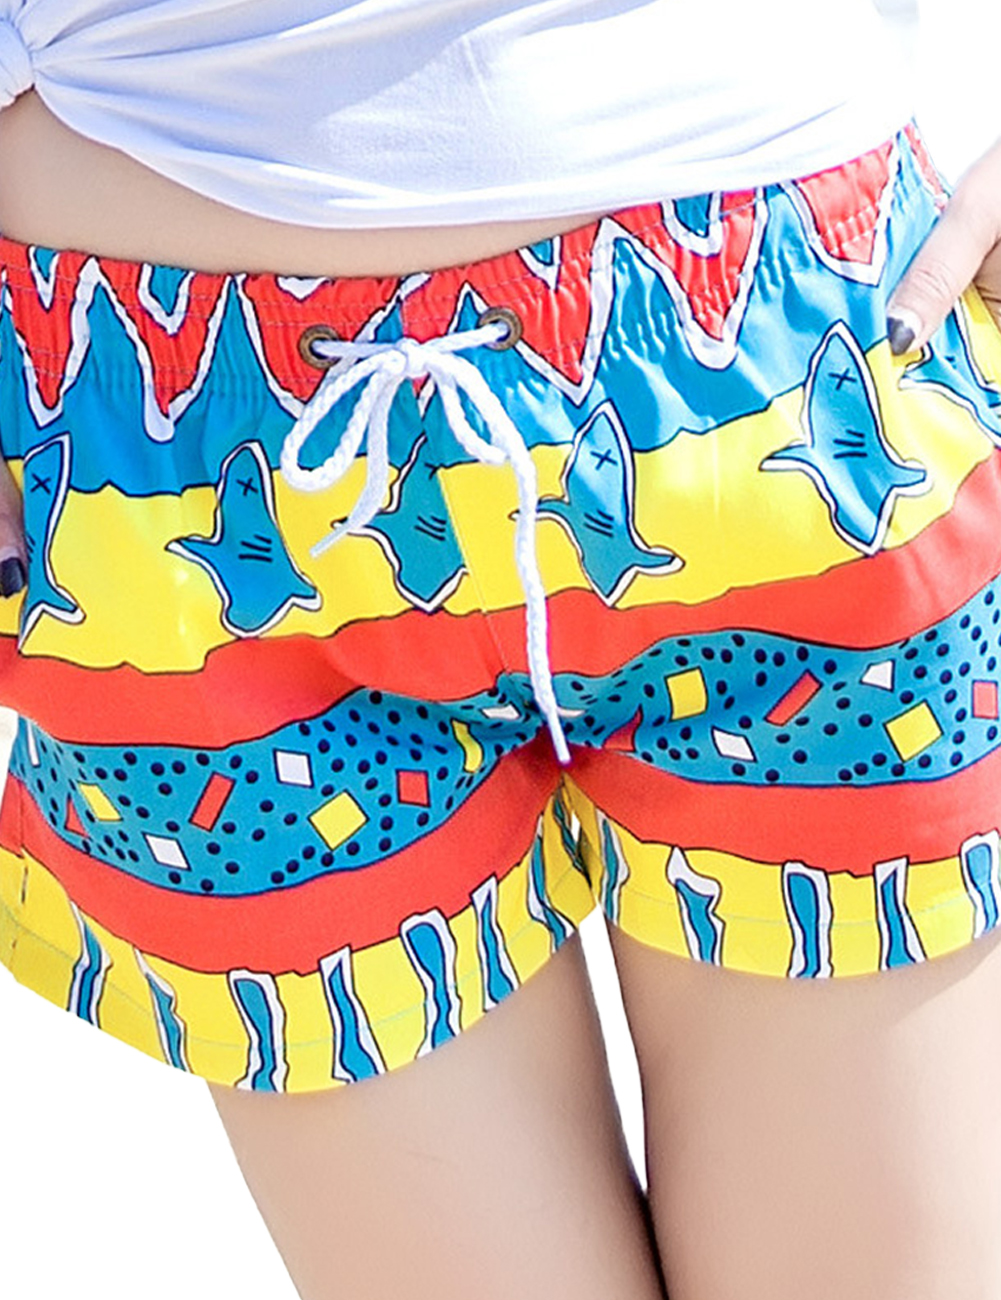 Lovers Fashion Soft Cotton T-shirts & Colorful Shorts Fashion Pattern Breathable Quick-dry Clothes